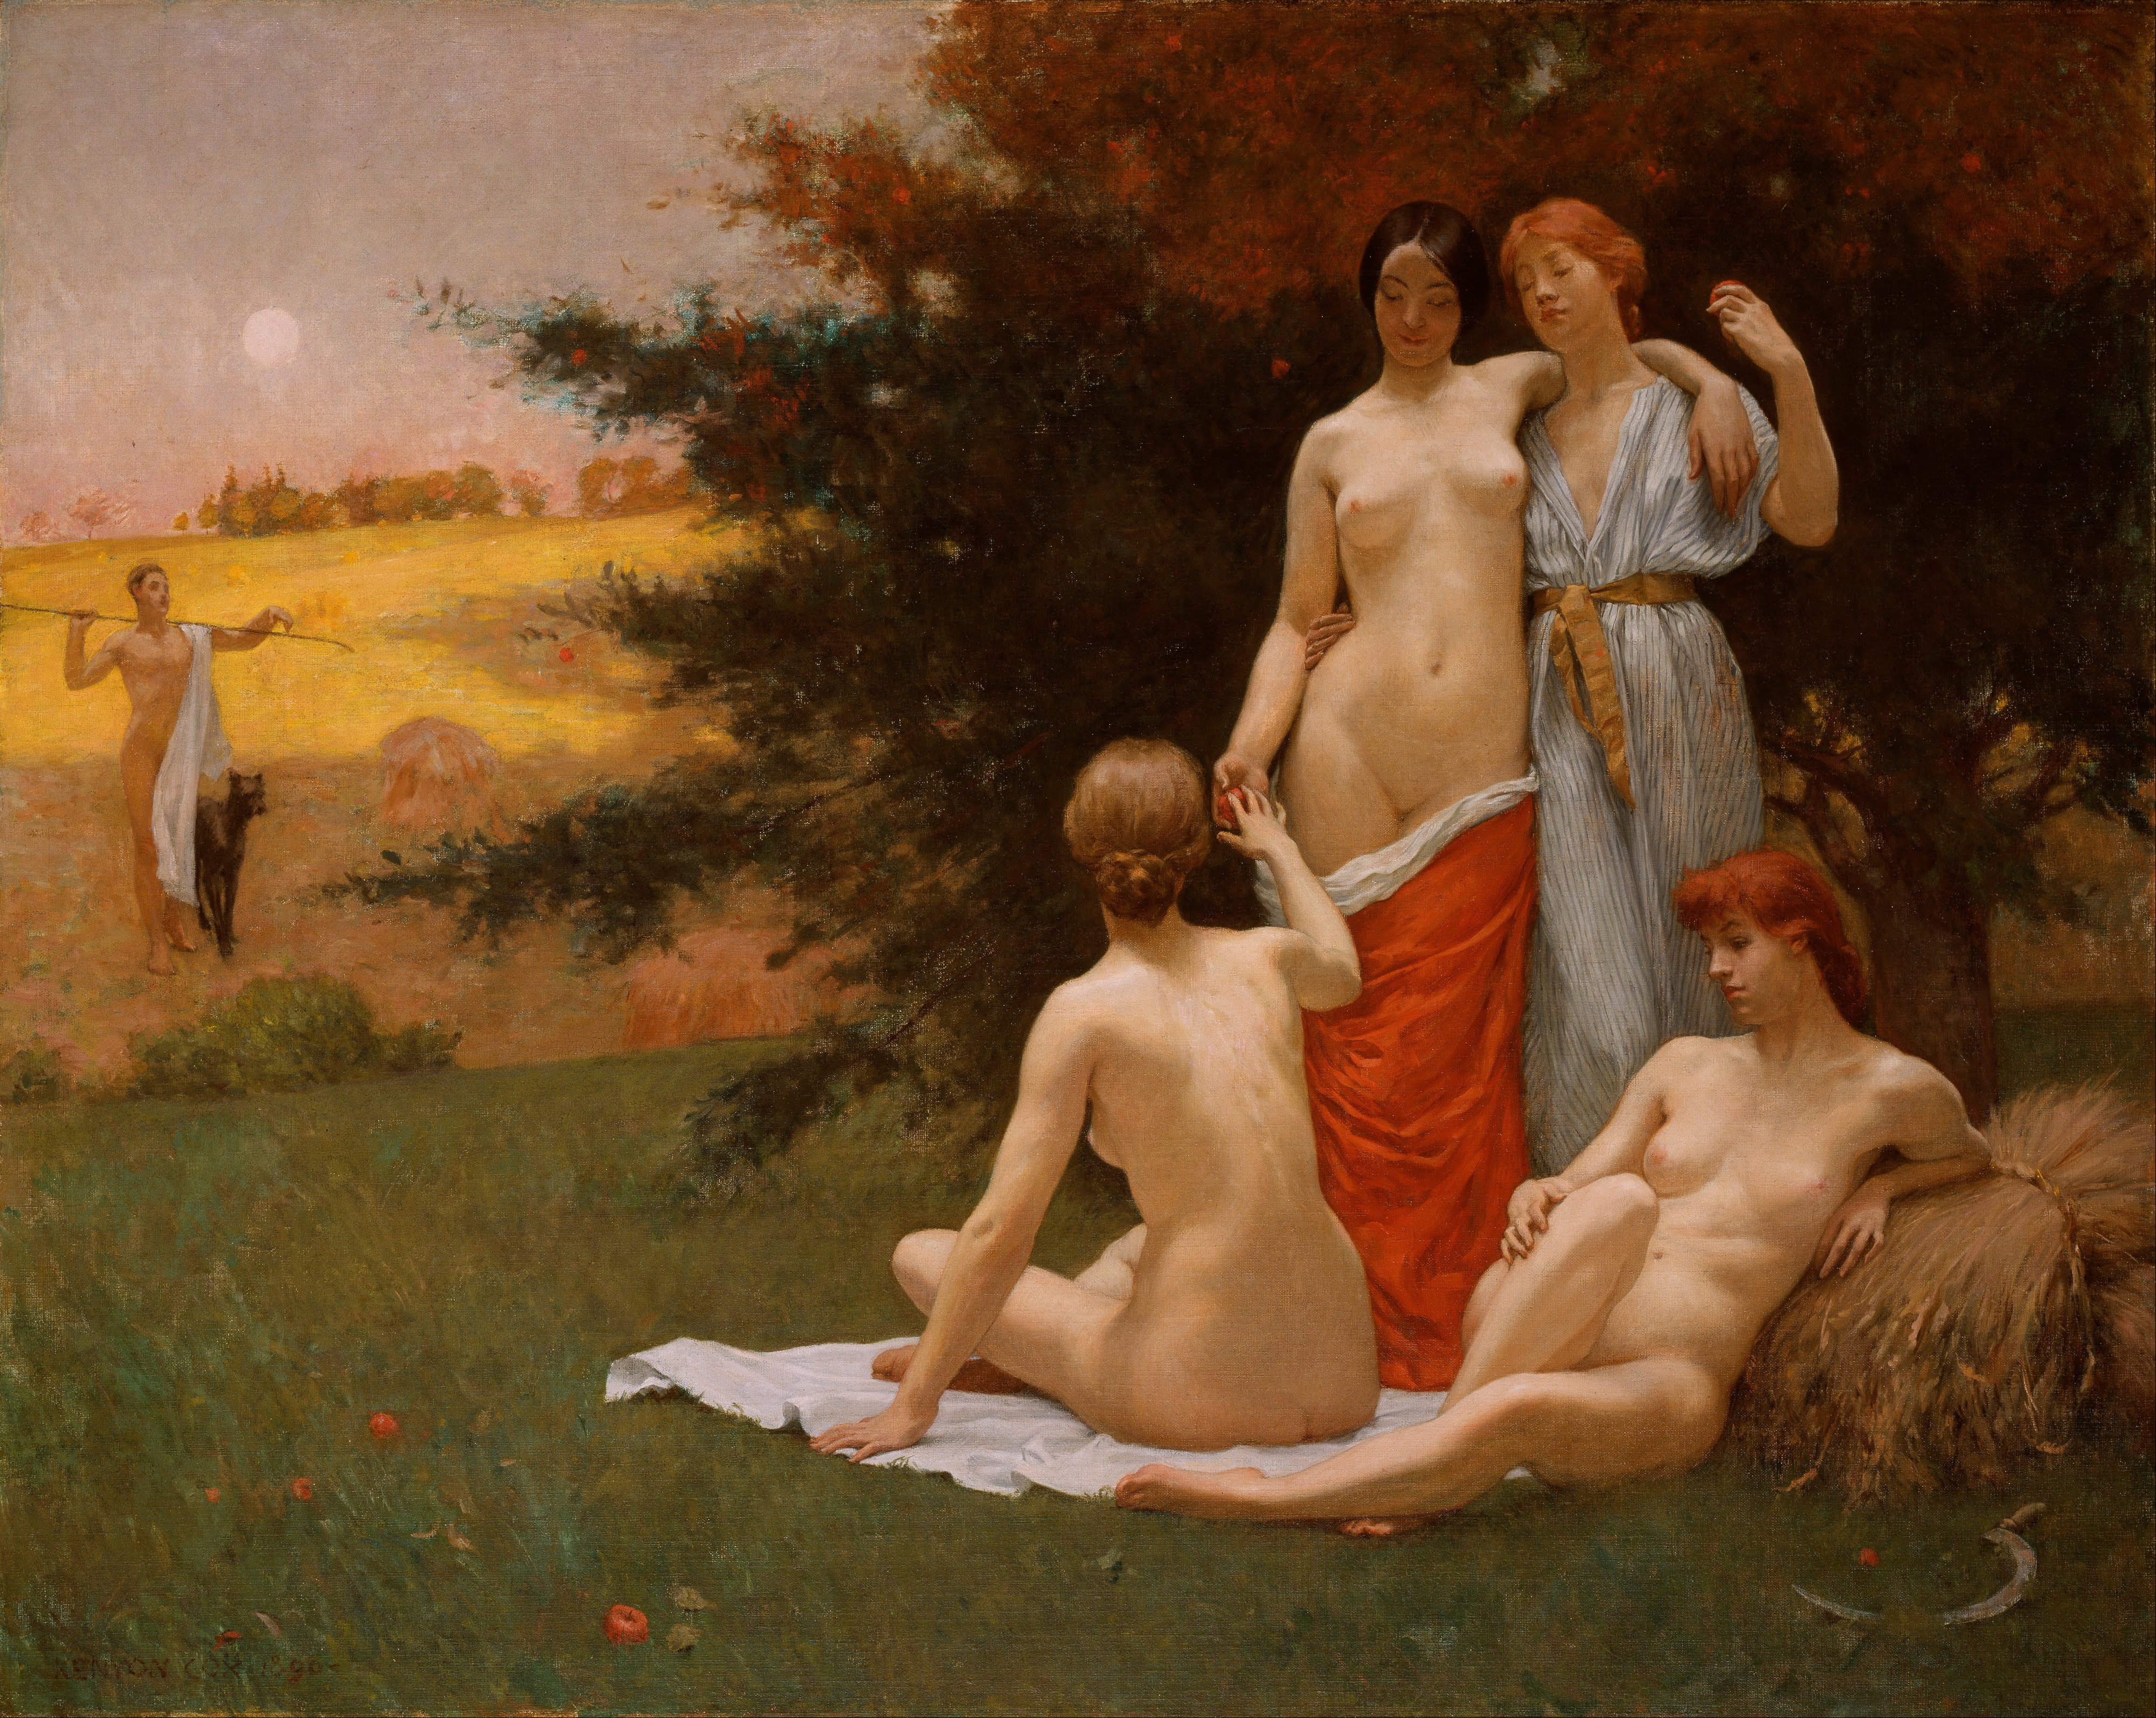 Kenyon Cox, An Eclogue, ca. 1890, Smithsonian American Art Museums